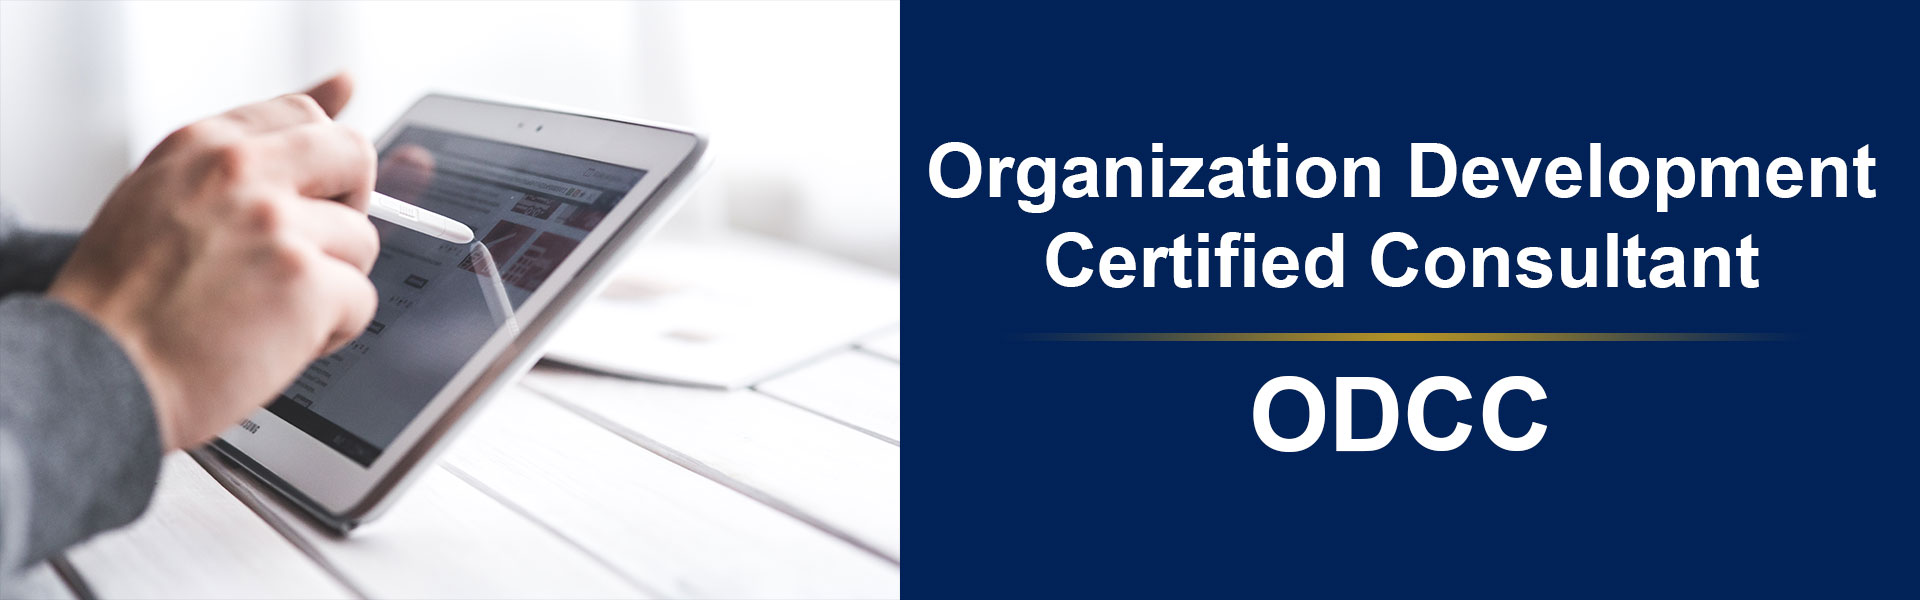 Organization Development Certified Consultant